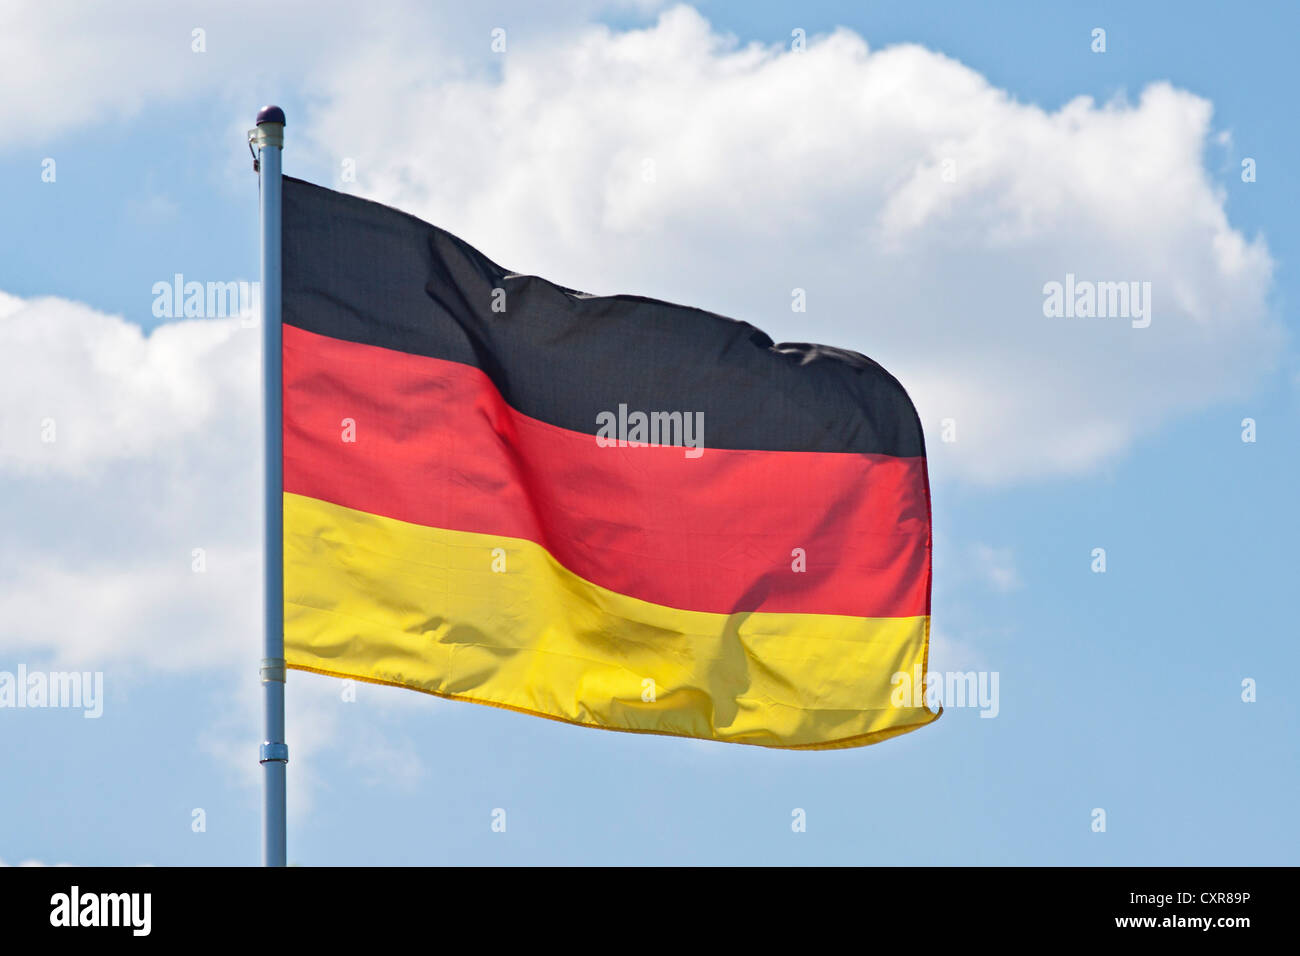 German flag, colours black, red and gold, Germany, Europe - Stock Image